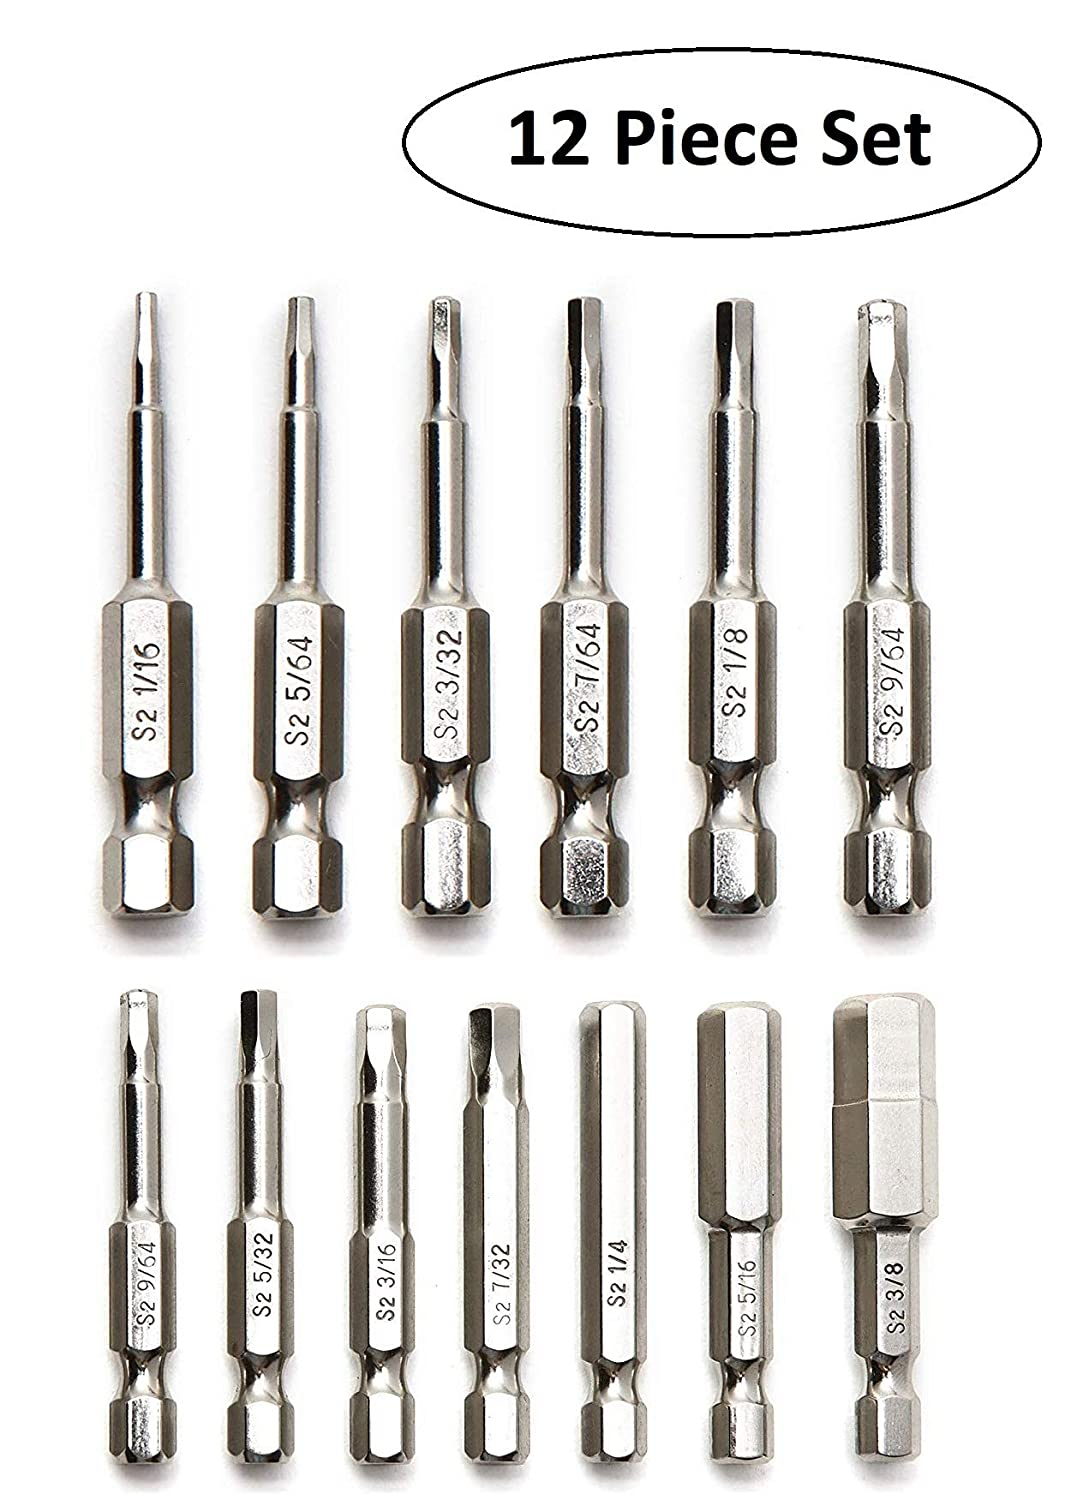 Baker and Bolt Allen Wrench Drill Bit Set (12pc COMPLETE SAE SET) Hex Shank Magnetic Bit Set - THE GIFD COLLECTION - Fortified S2 Steel - Long 2in Heads for Handheld and Electric Drills